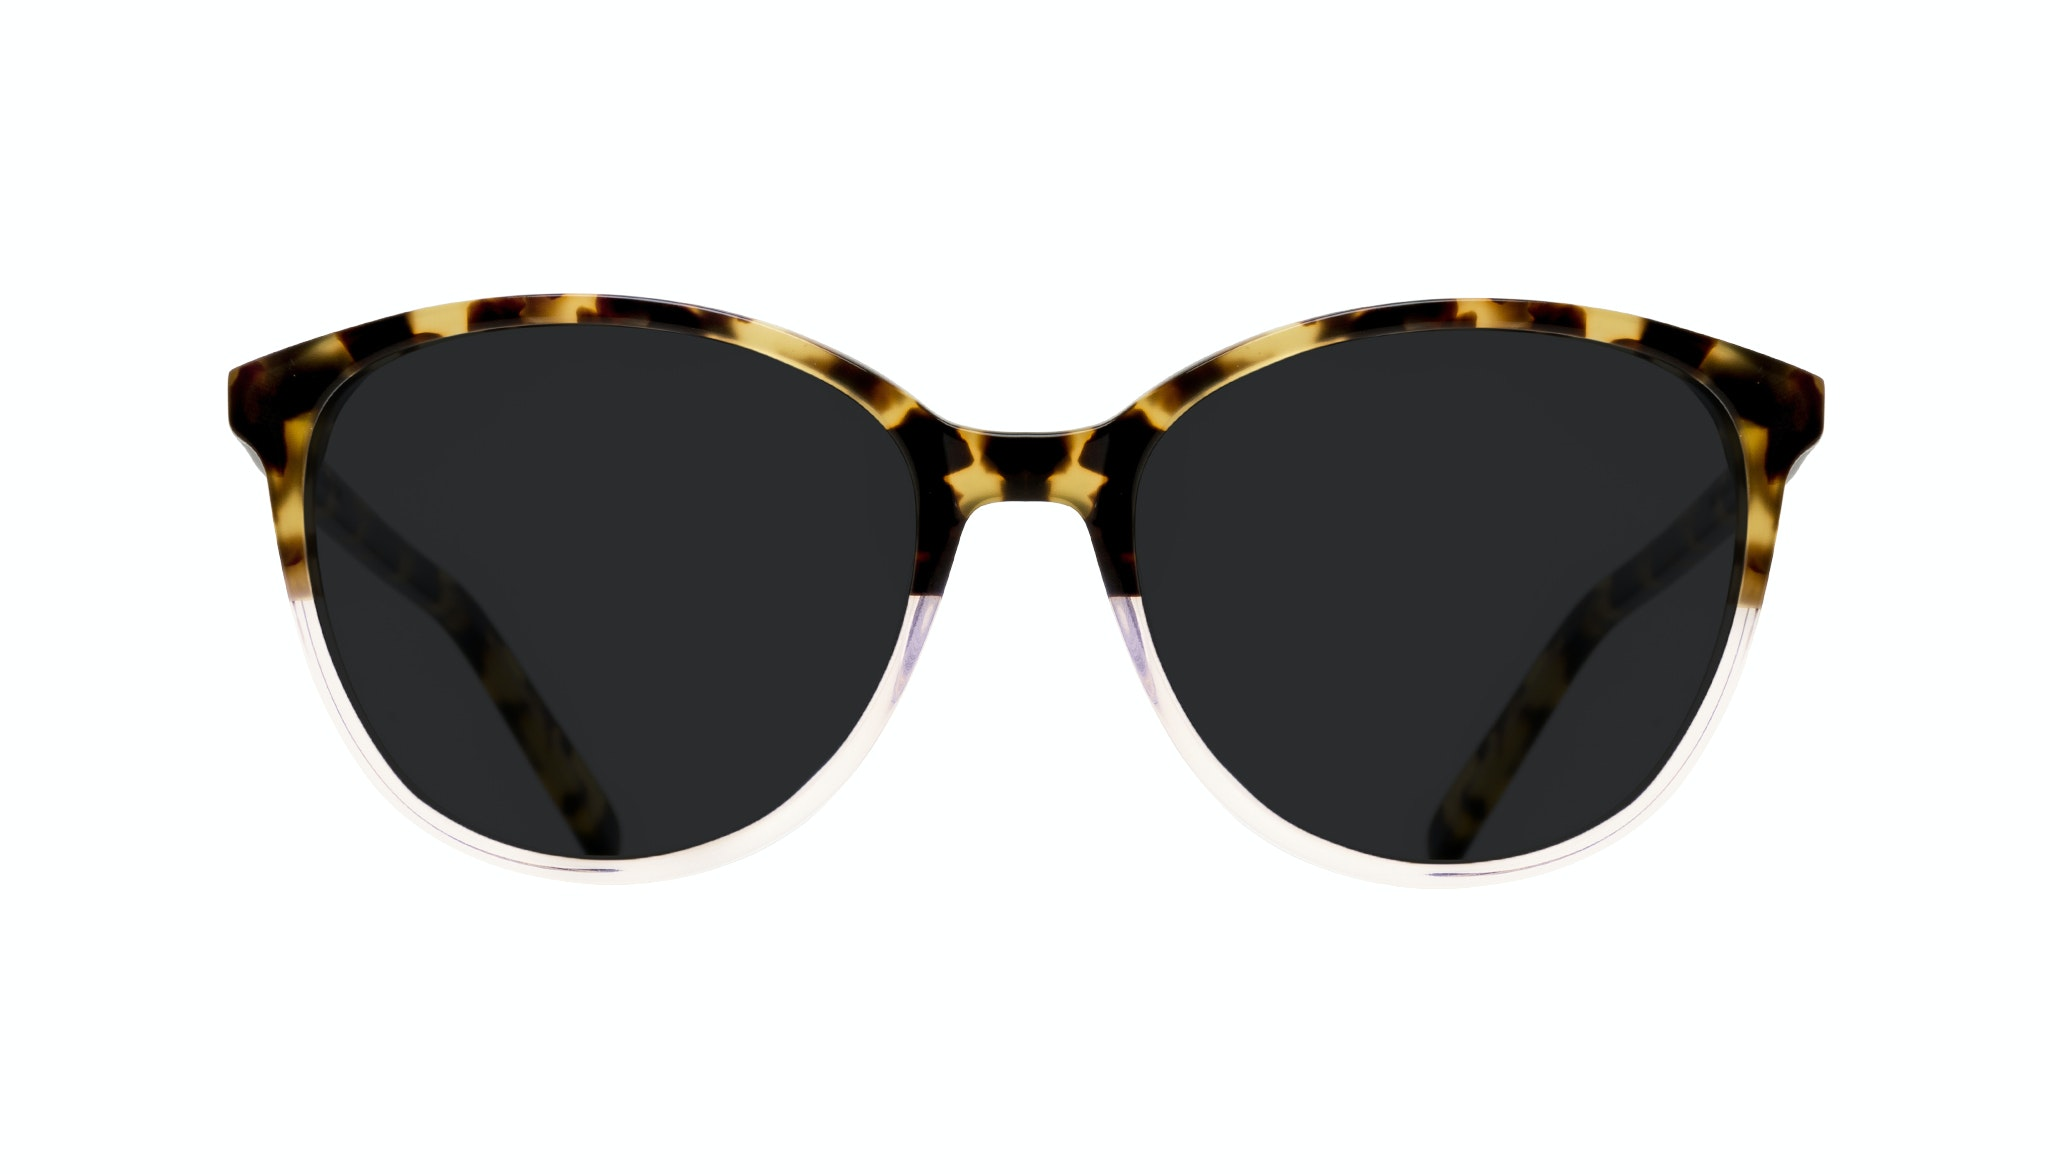 Affordable Fashion Glasses Cat Eye Round Sunglasses Women Imagine Blond Tort